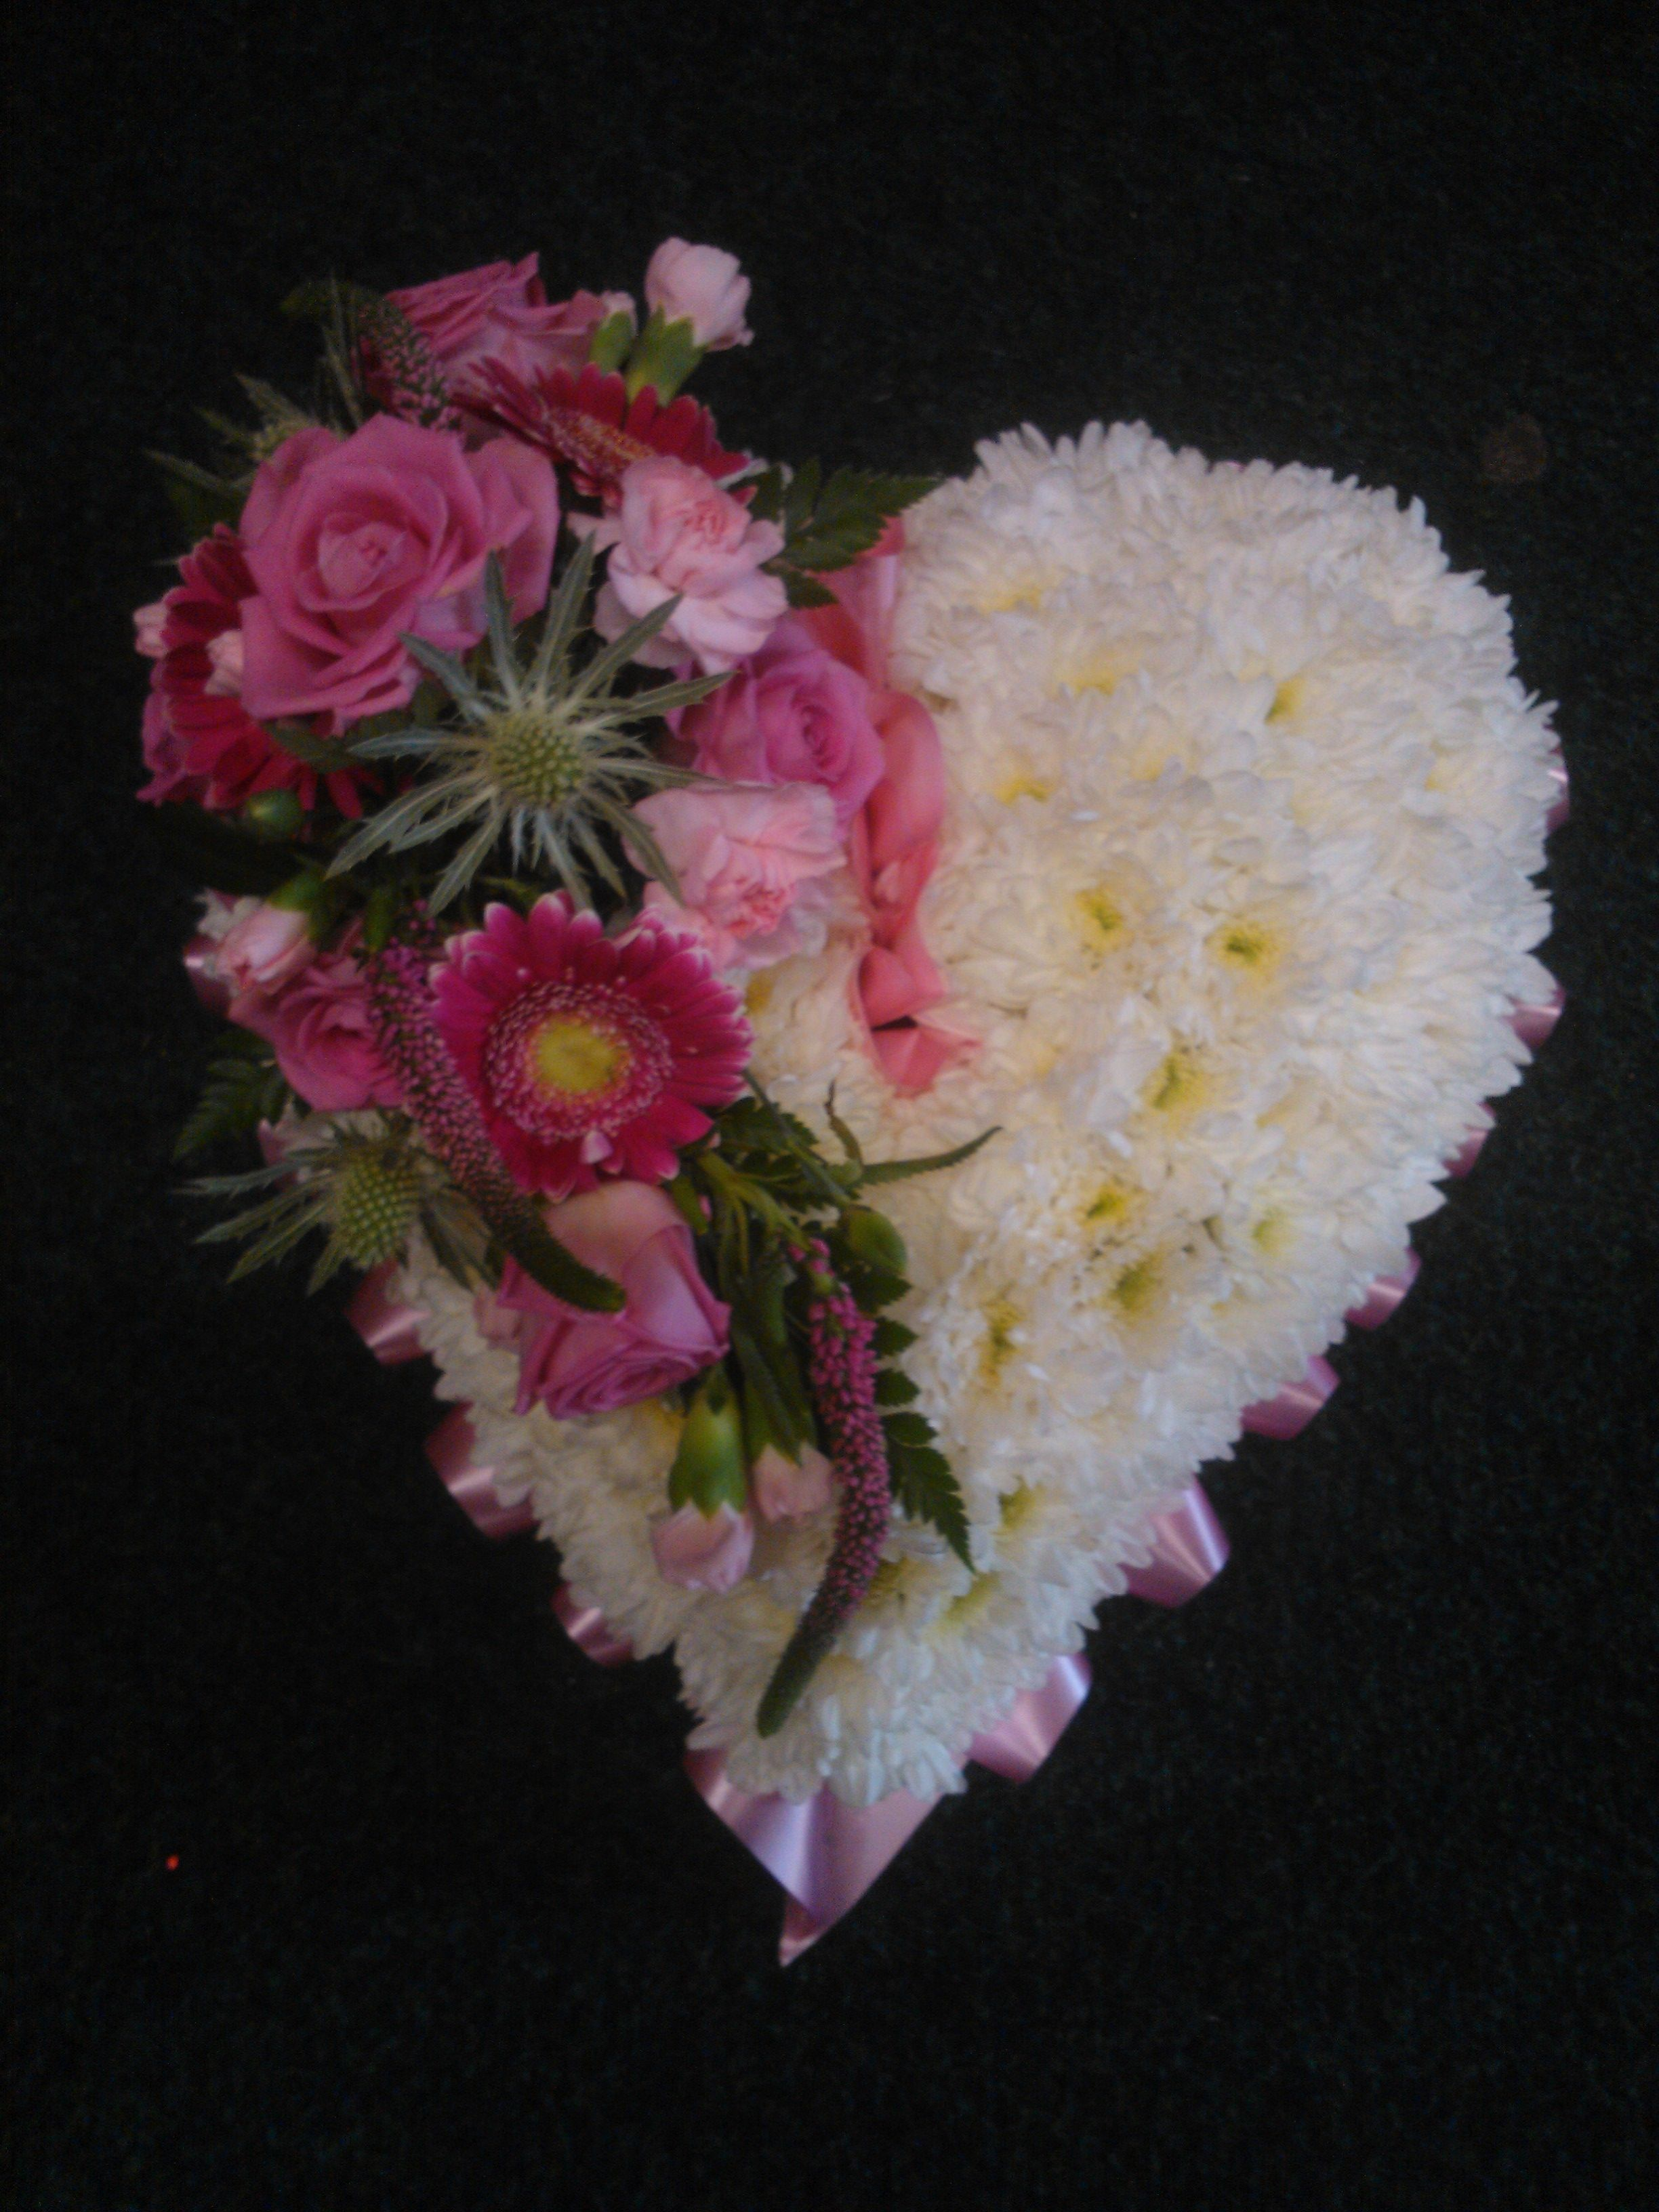 Funeral flowers floralcraft flowers heart funeral tribute flowers izmirmasajfo Image collections